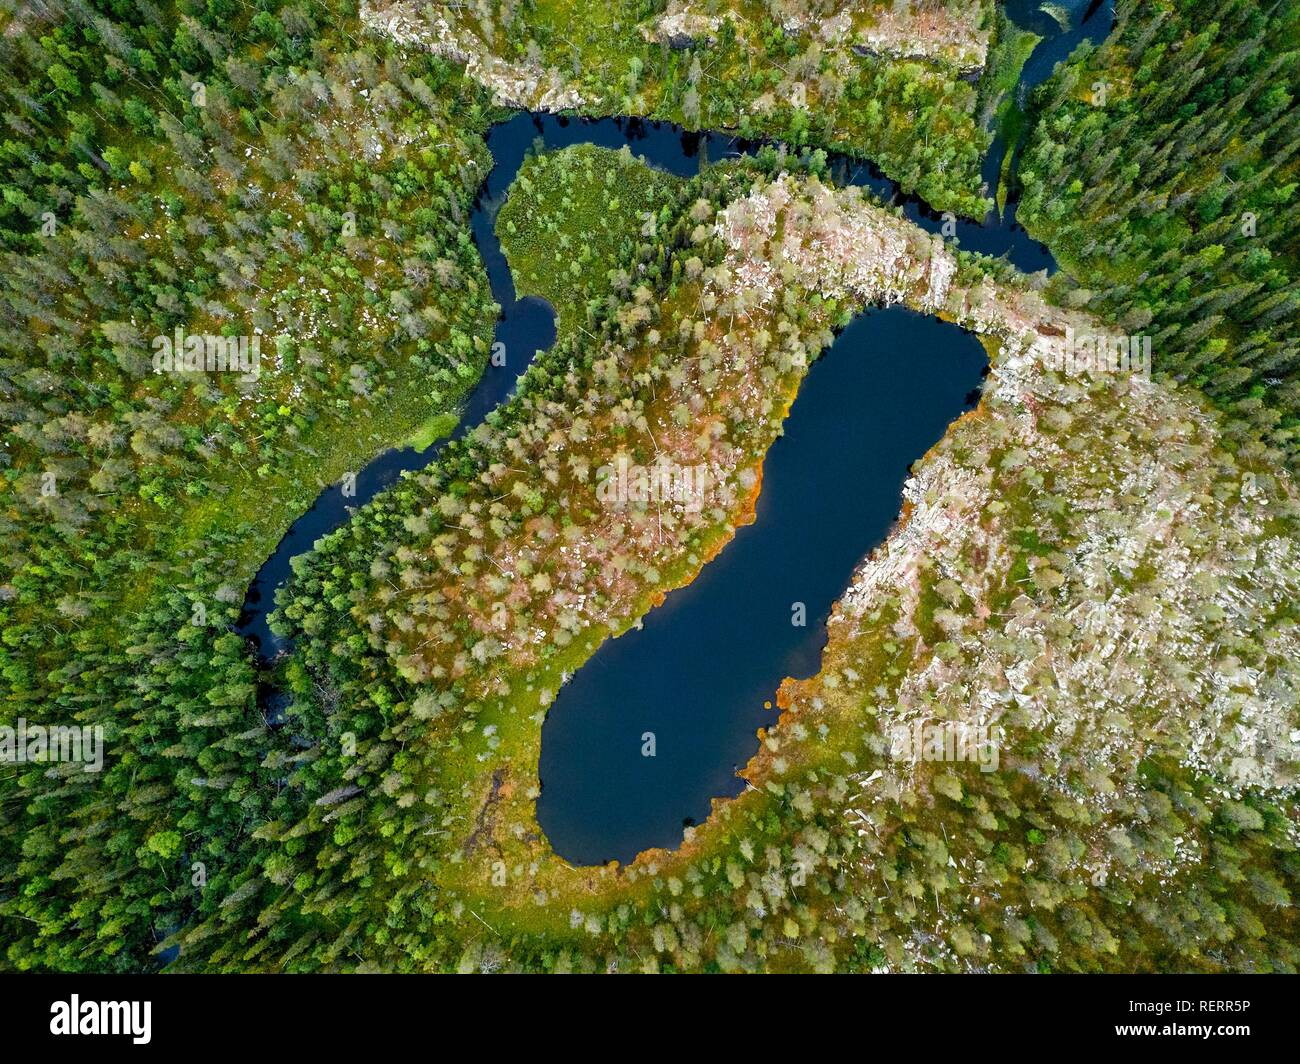 Drone view, aerial photo of a shoe shaped lake and river in the boreal, arctic forest with conifers, Pines (Pinus) in - Stock Image